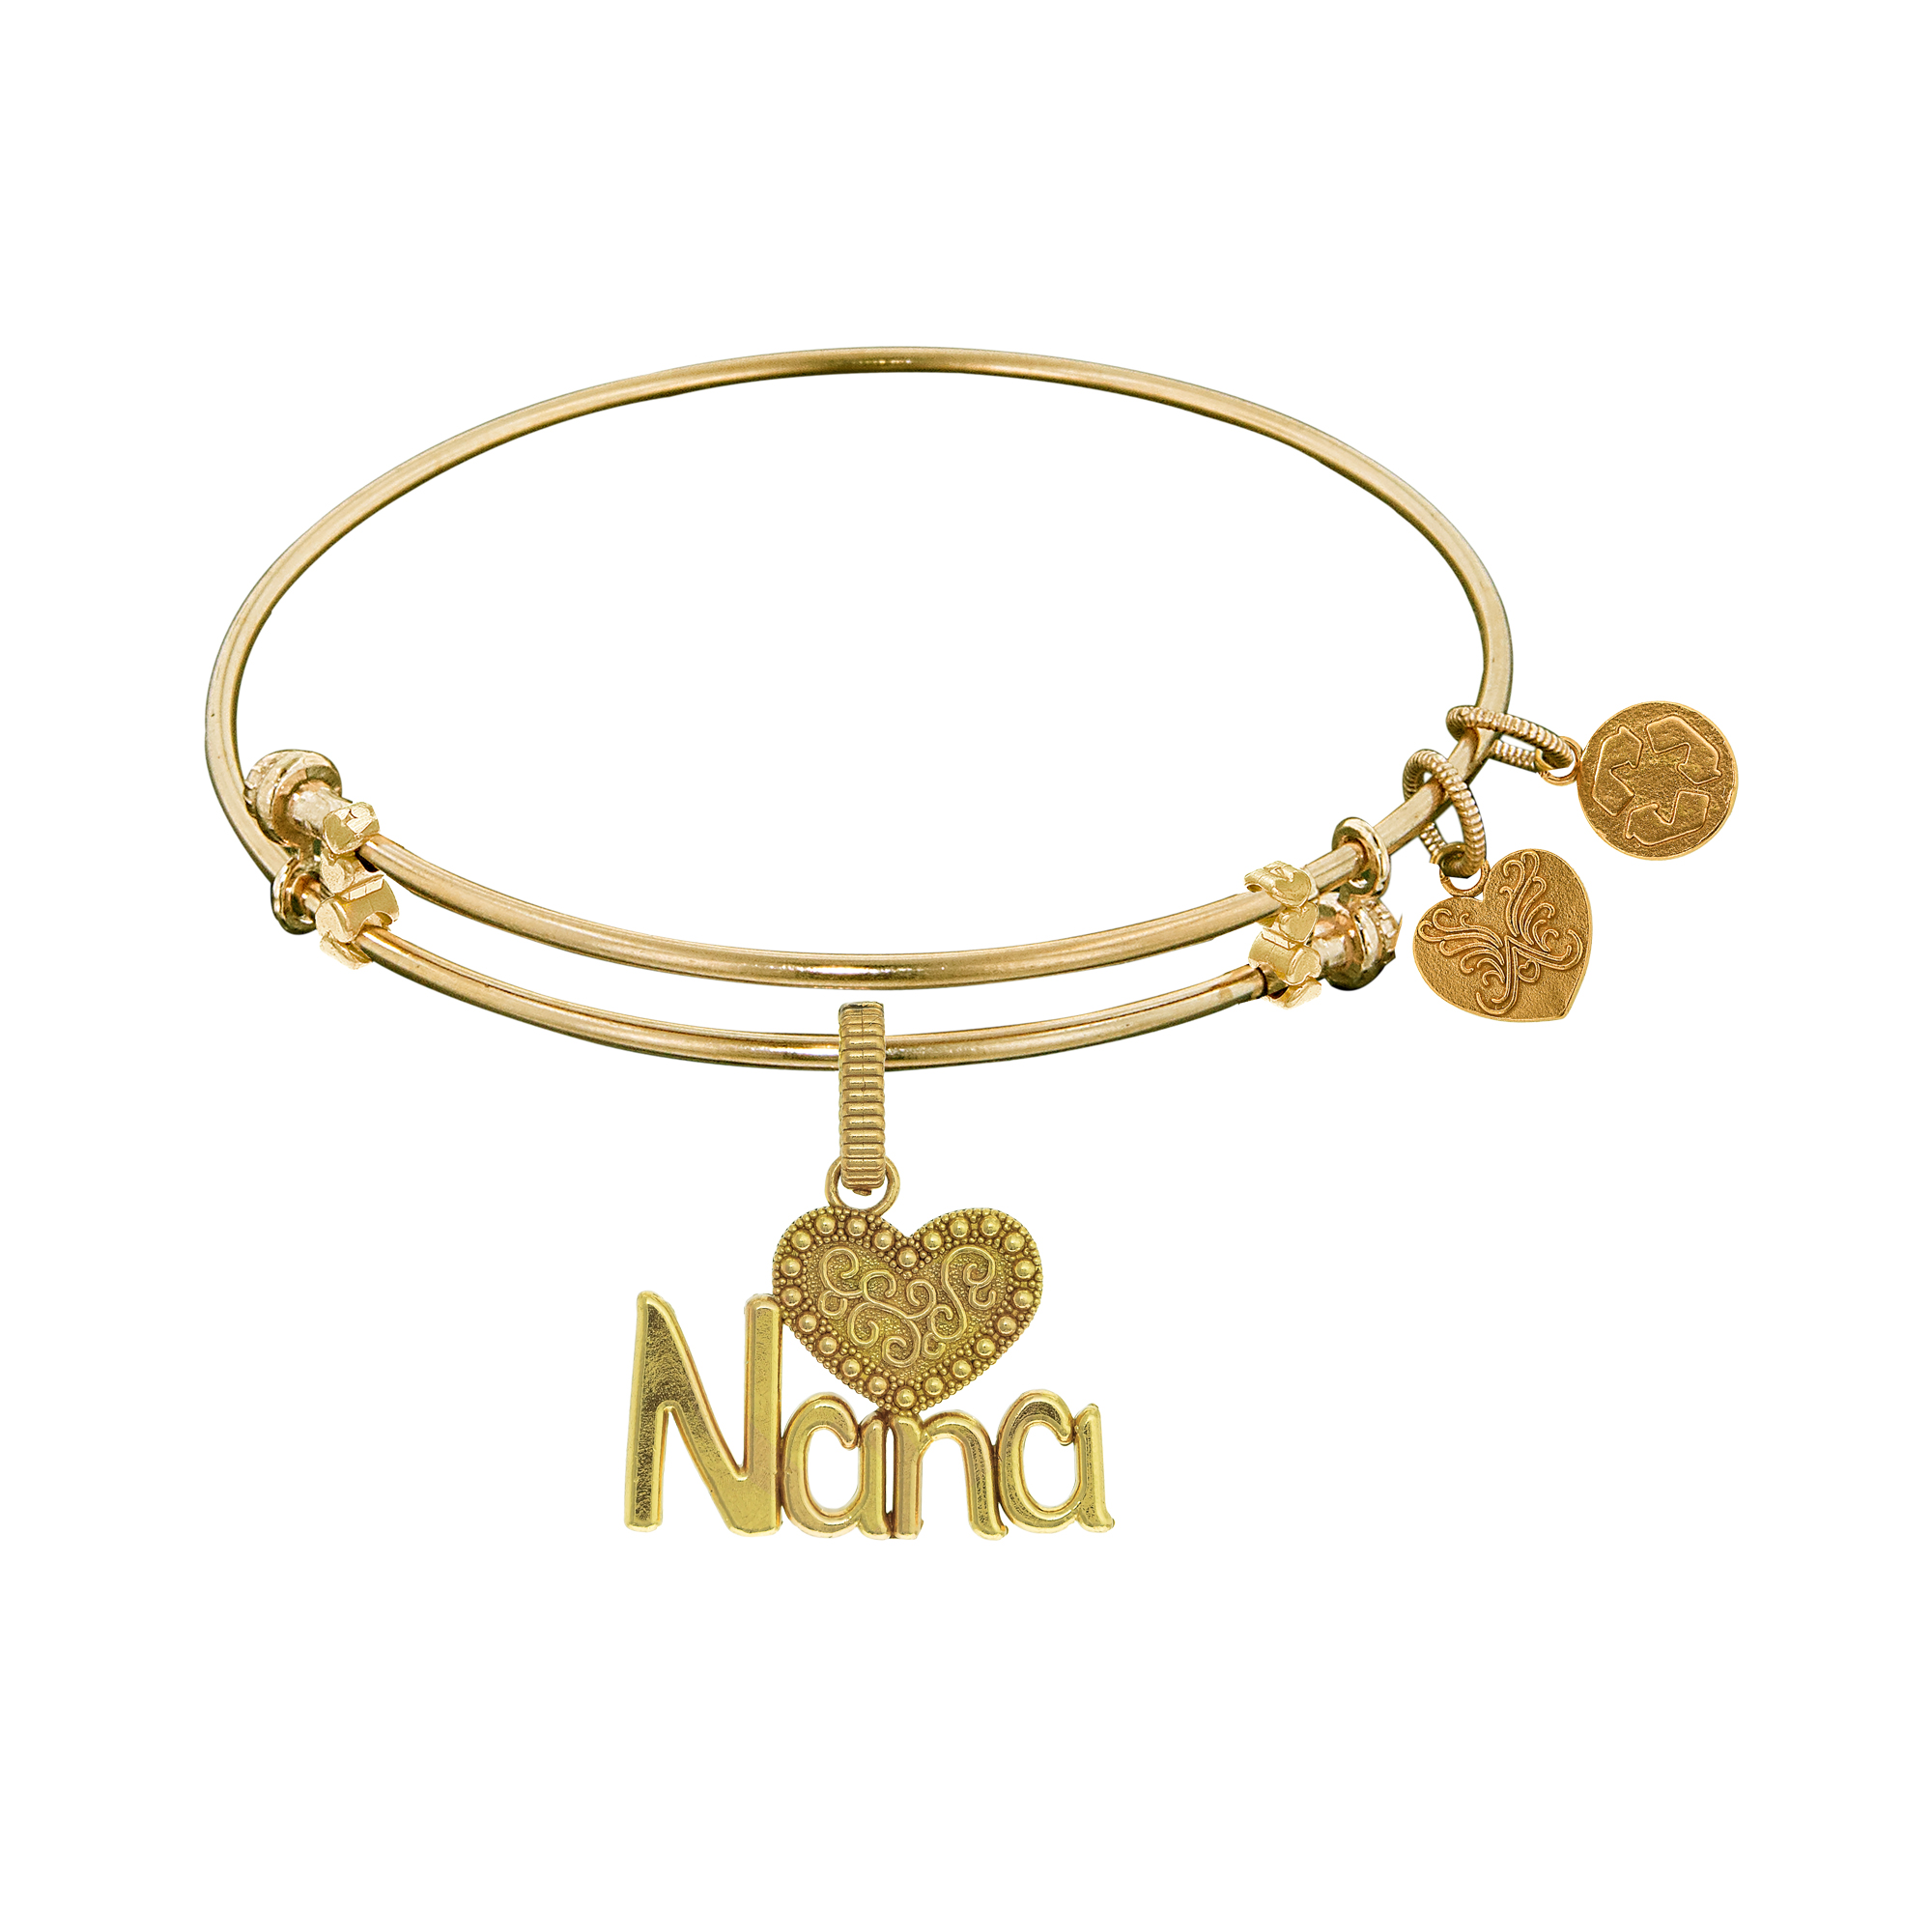 Nana With Heart Charm Expandable Bangle Bracelet, 7.25″